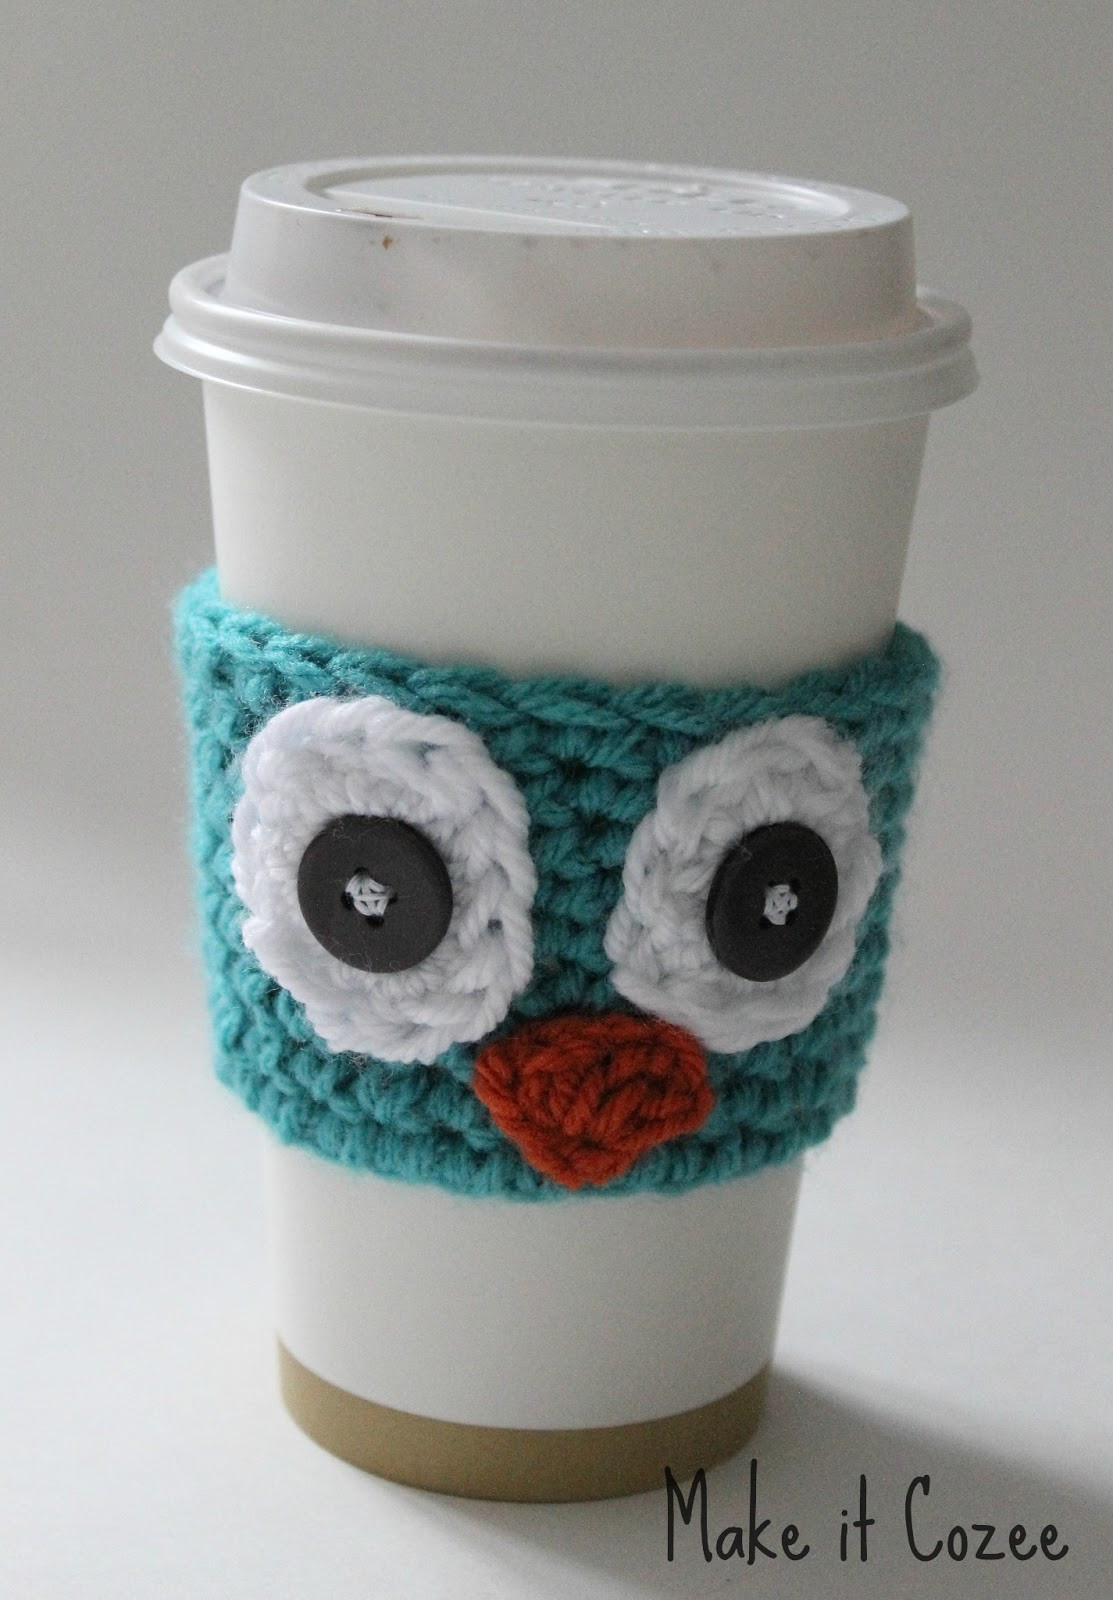 Crochet Coffee Cup Cozy Inspirational Make It Cozee Crochet Owl Coffee Cozy Of Crochet Coffee Cup Cozy Best Of Craftdrawer Crafts Free Easy to Crochet Mug Cozy Patterns